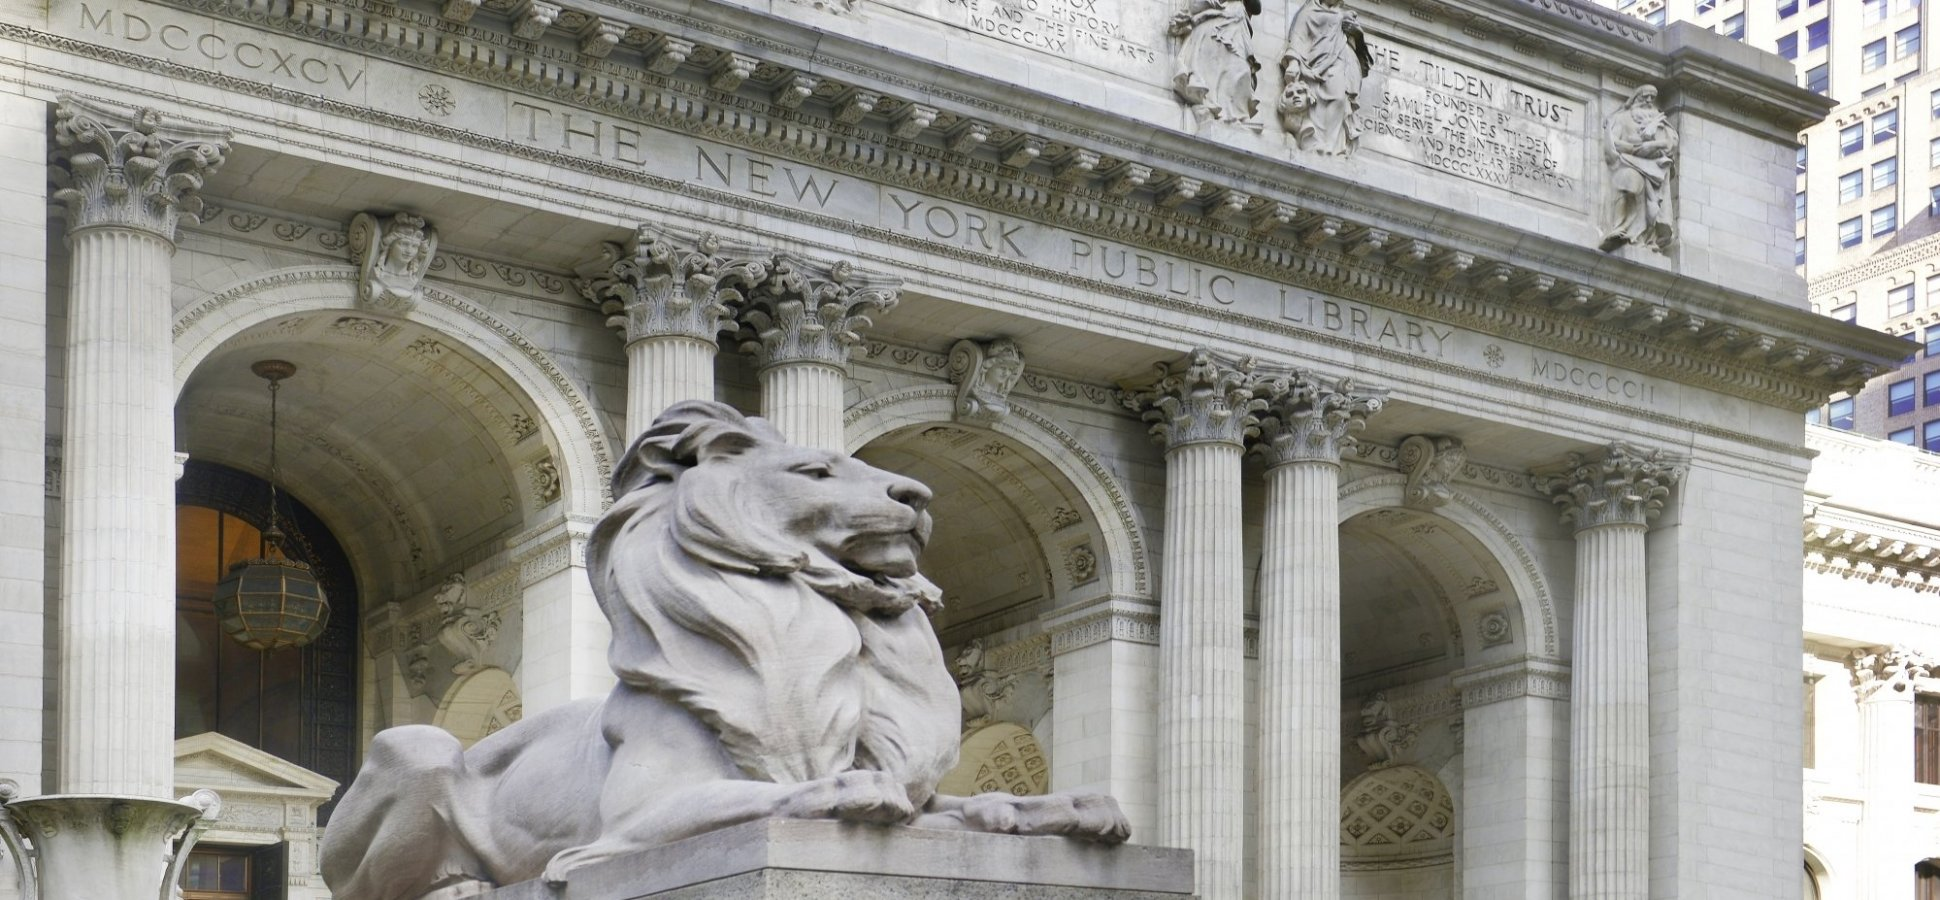 Thanks to the New York Public Library You Can Now Download Millions of Books for Free